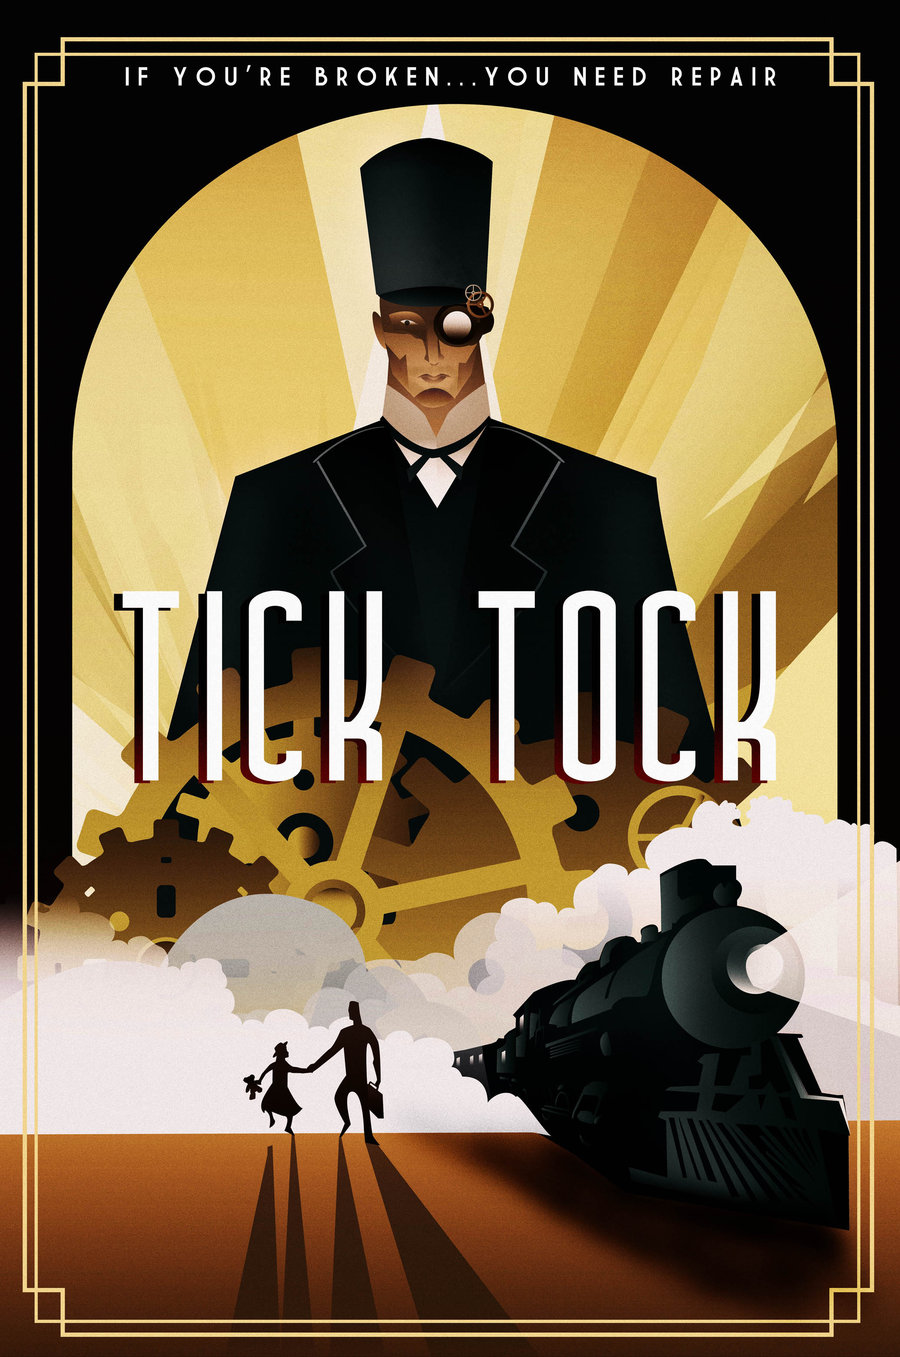 tick_tock_movie_poster_by_rodolforever